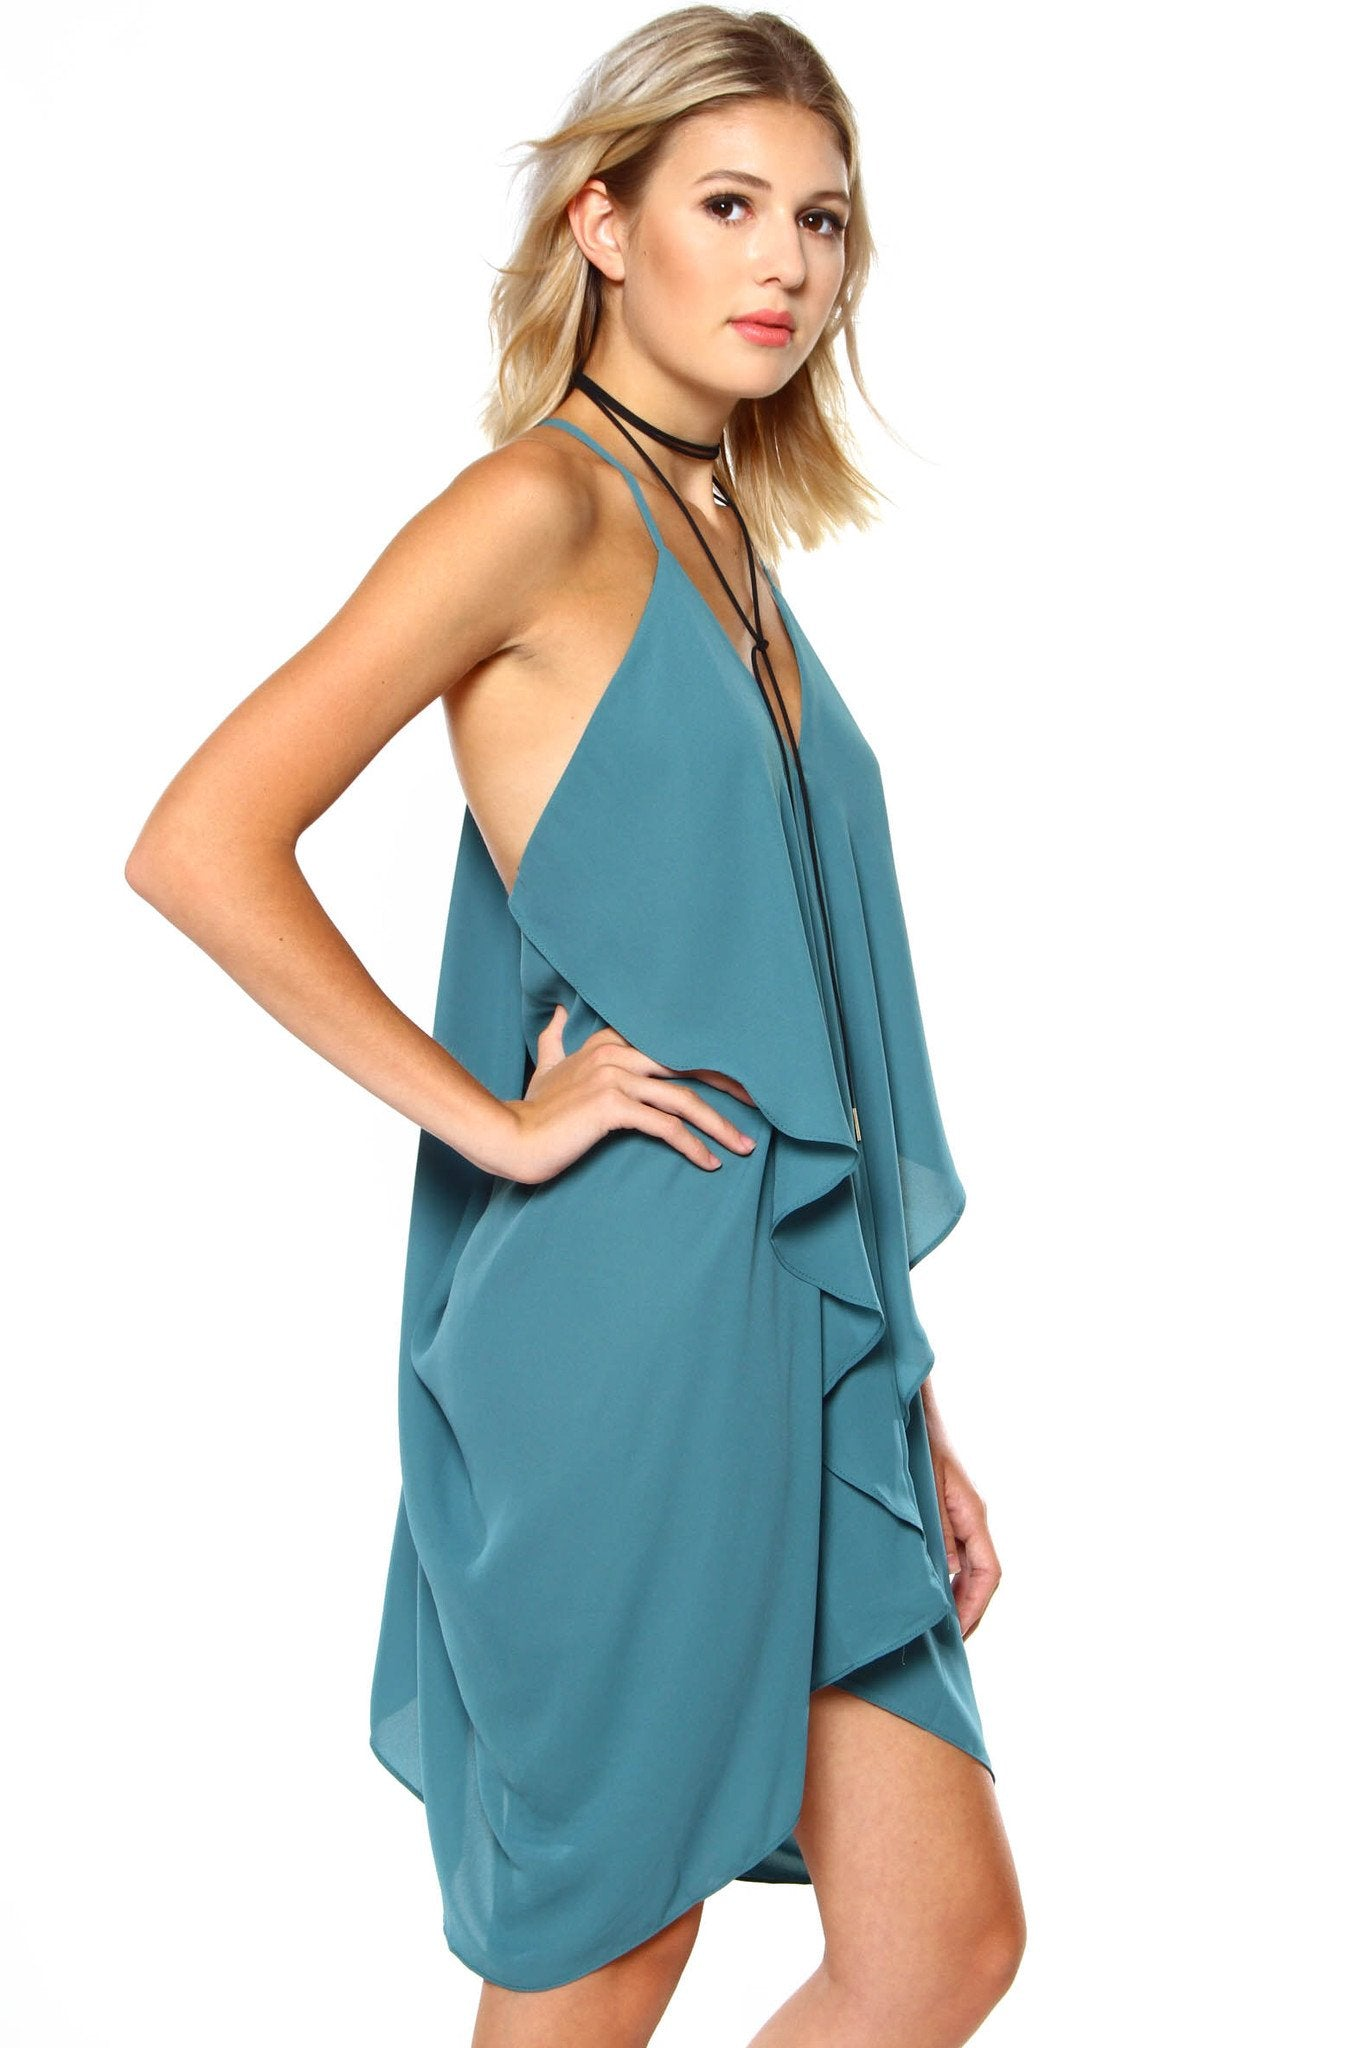 Take The Plunge Dress - Agave Blue